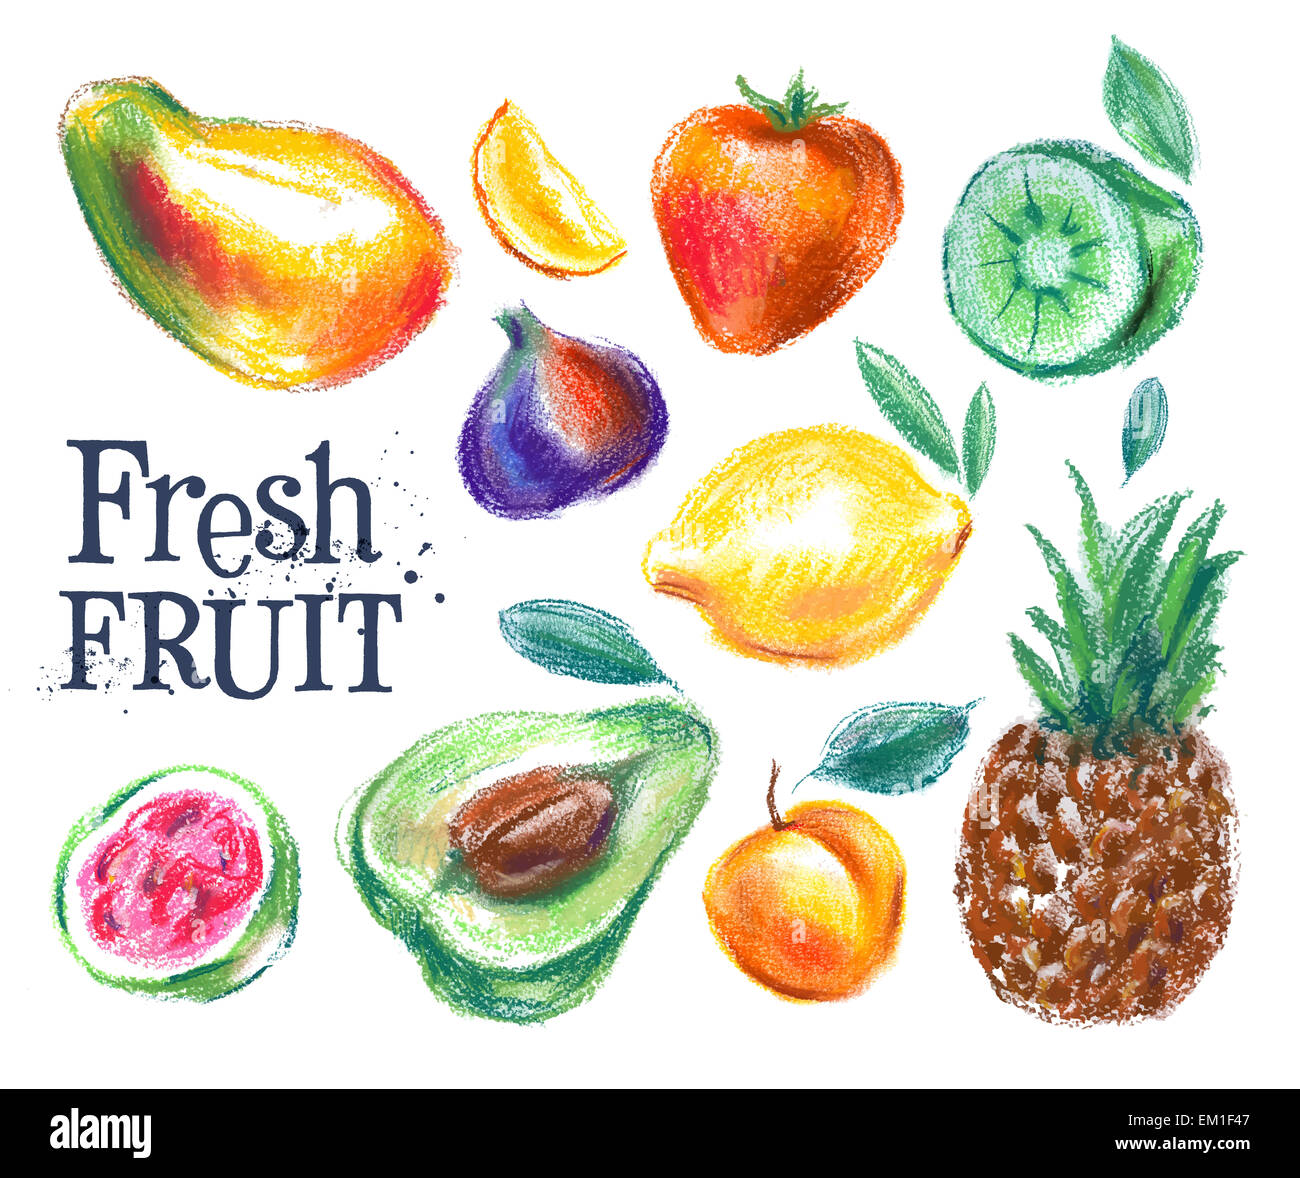 Pineapple Fresh Fruit Drawing Icon Stockfotos & Pineapple Fresh ...